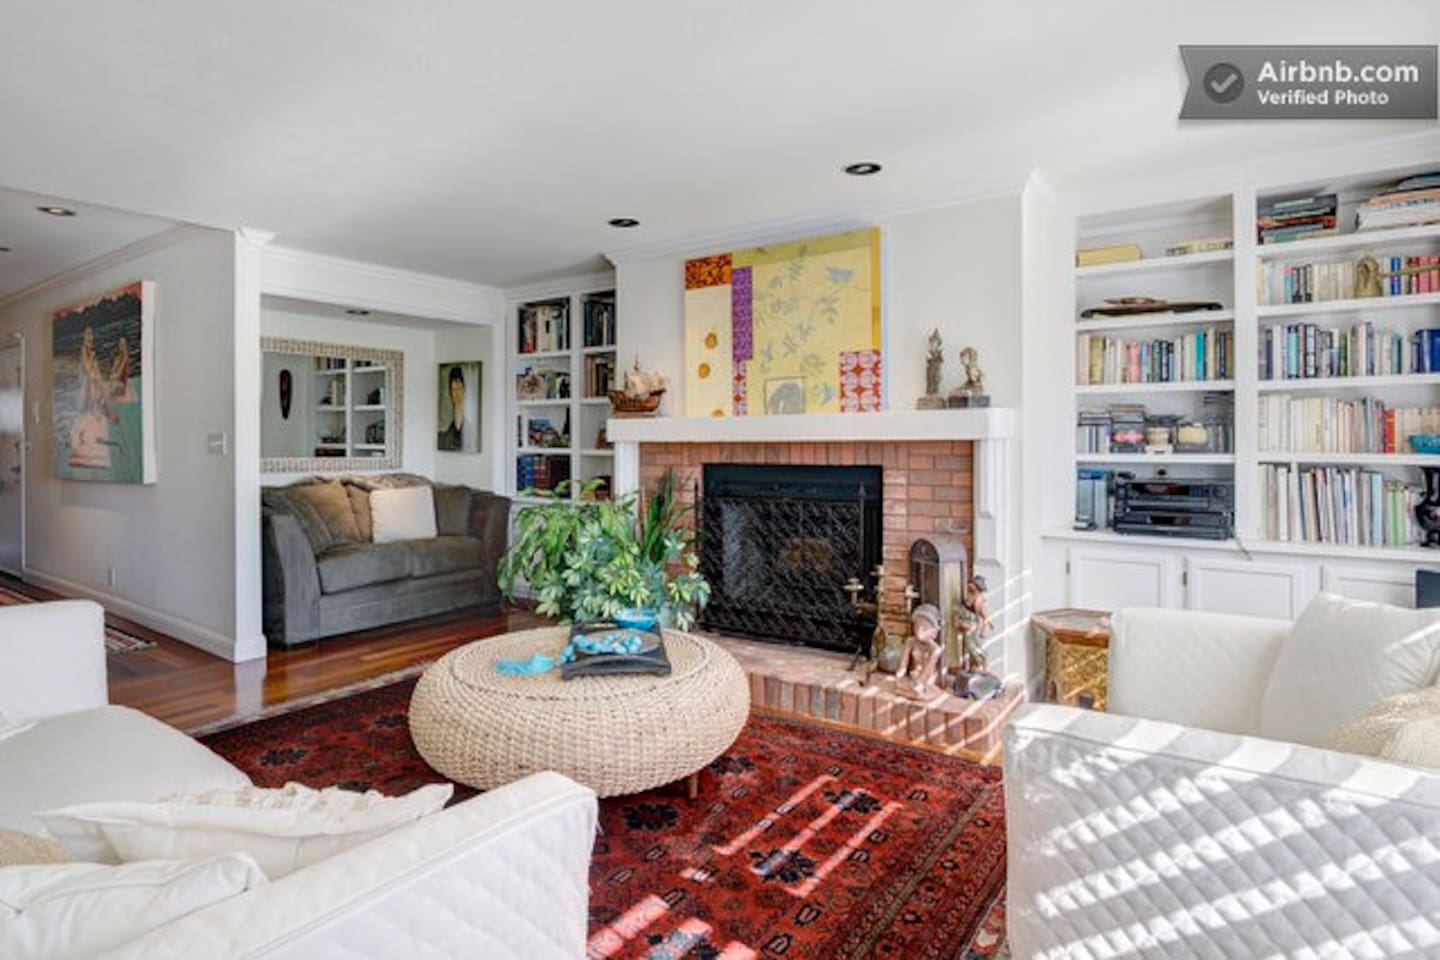 Living room with comfortable sofas, reading nook with bookcases surrounding fireplace. Cosy warm atmosphere with great art.